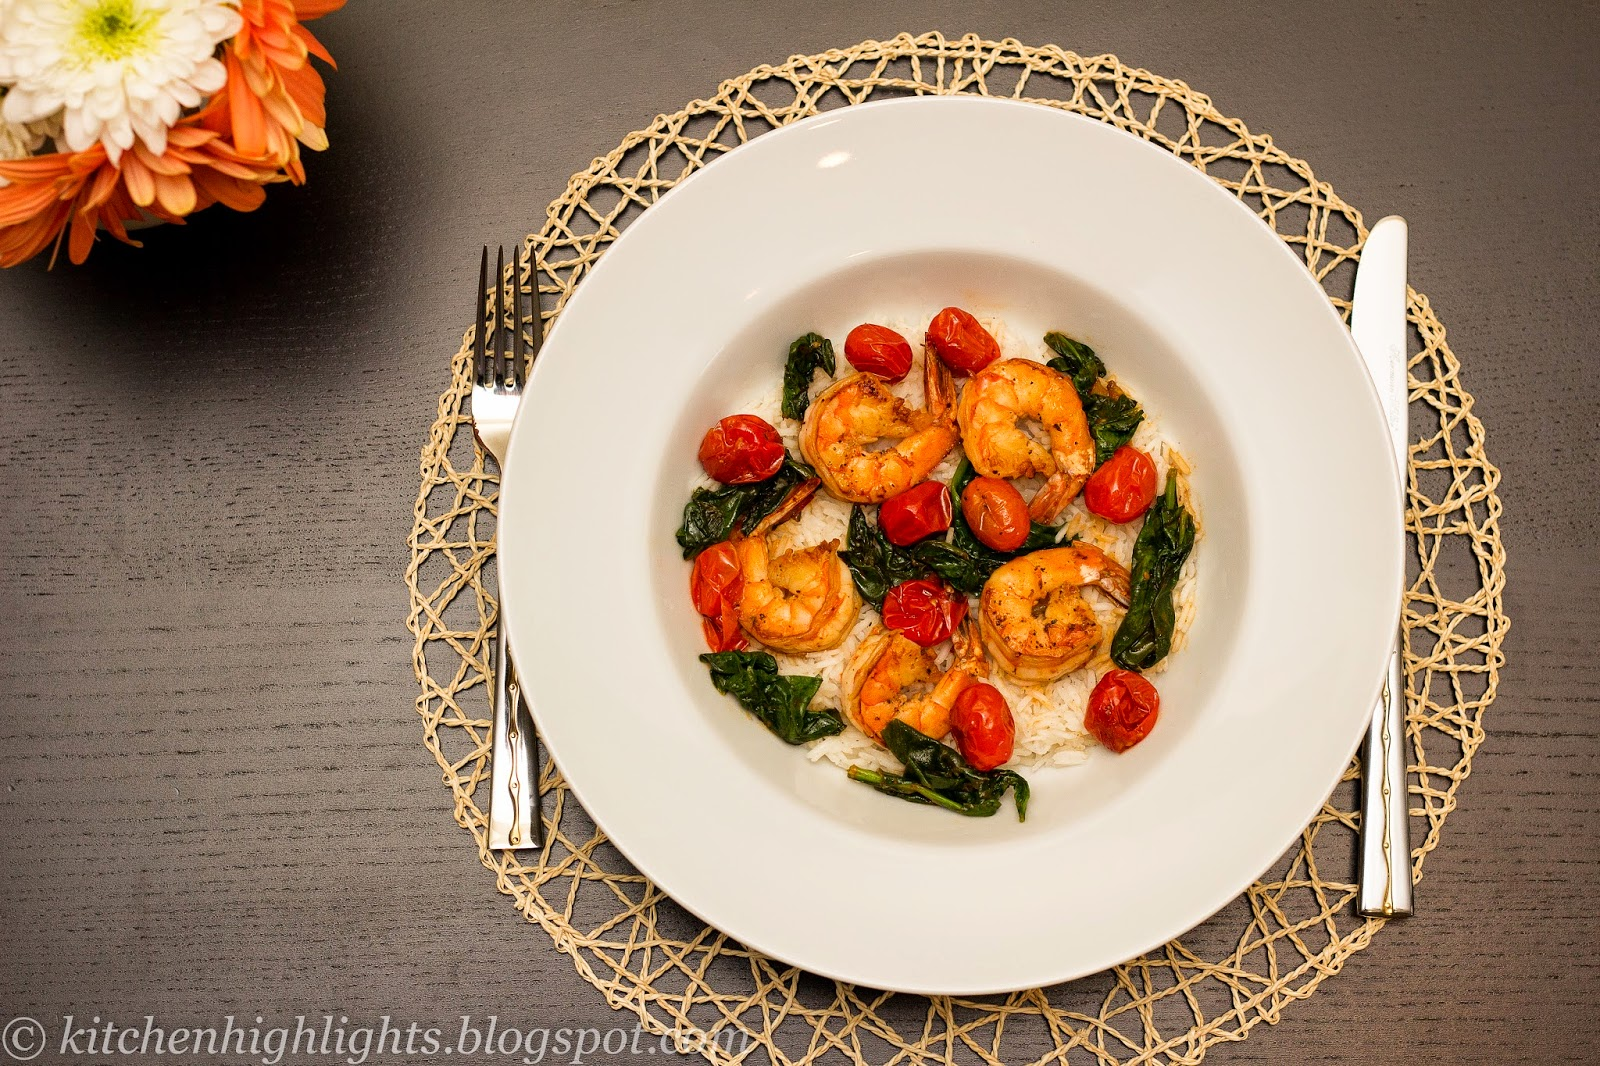 Simple, delicious and quick to cook, sautéed shrimp with fresh cherry tomatoes and spinach is an excellent choice for lunch or dinner